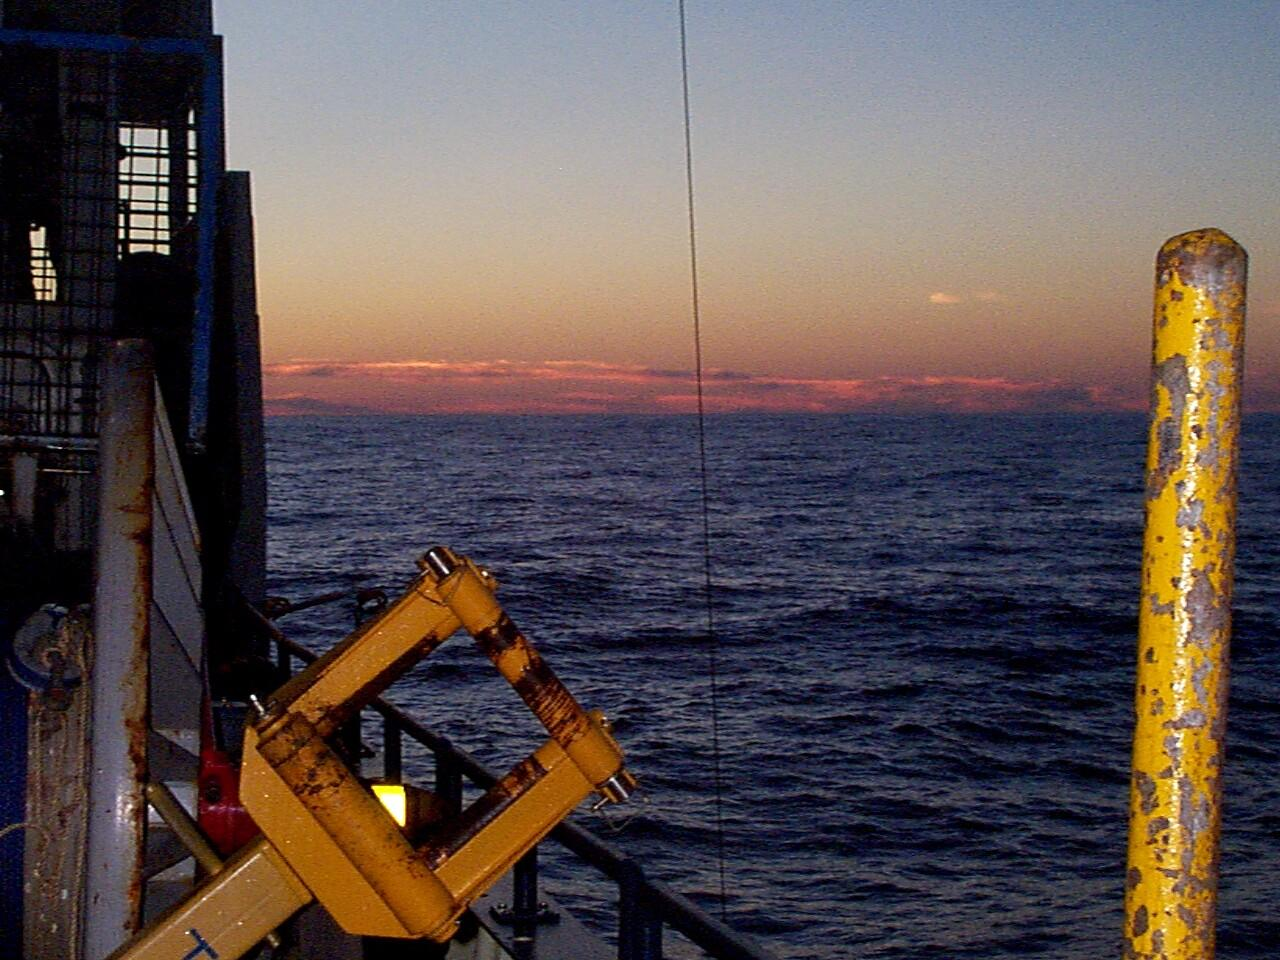 Ending a successful program with a sunset during a CTD profile from the aft deck on OC346 August 1999.